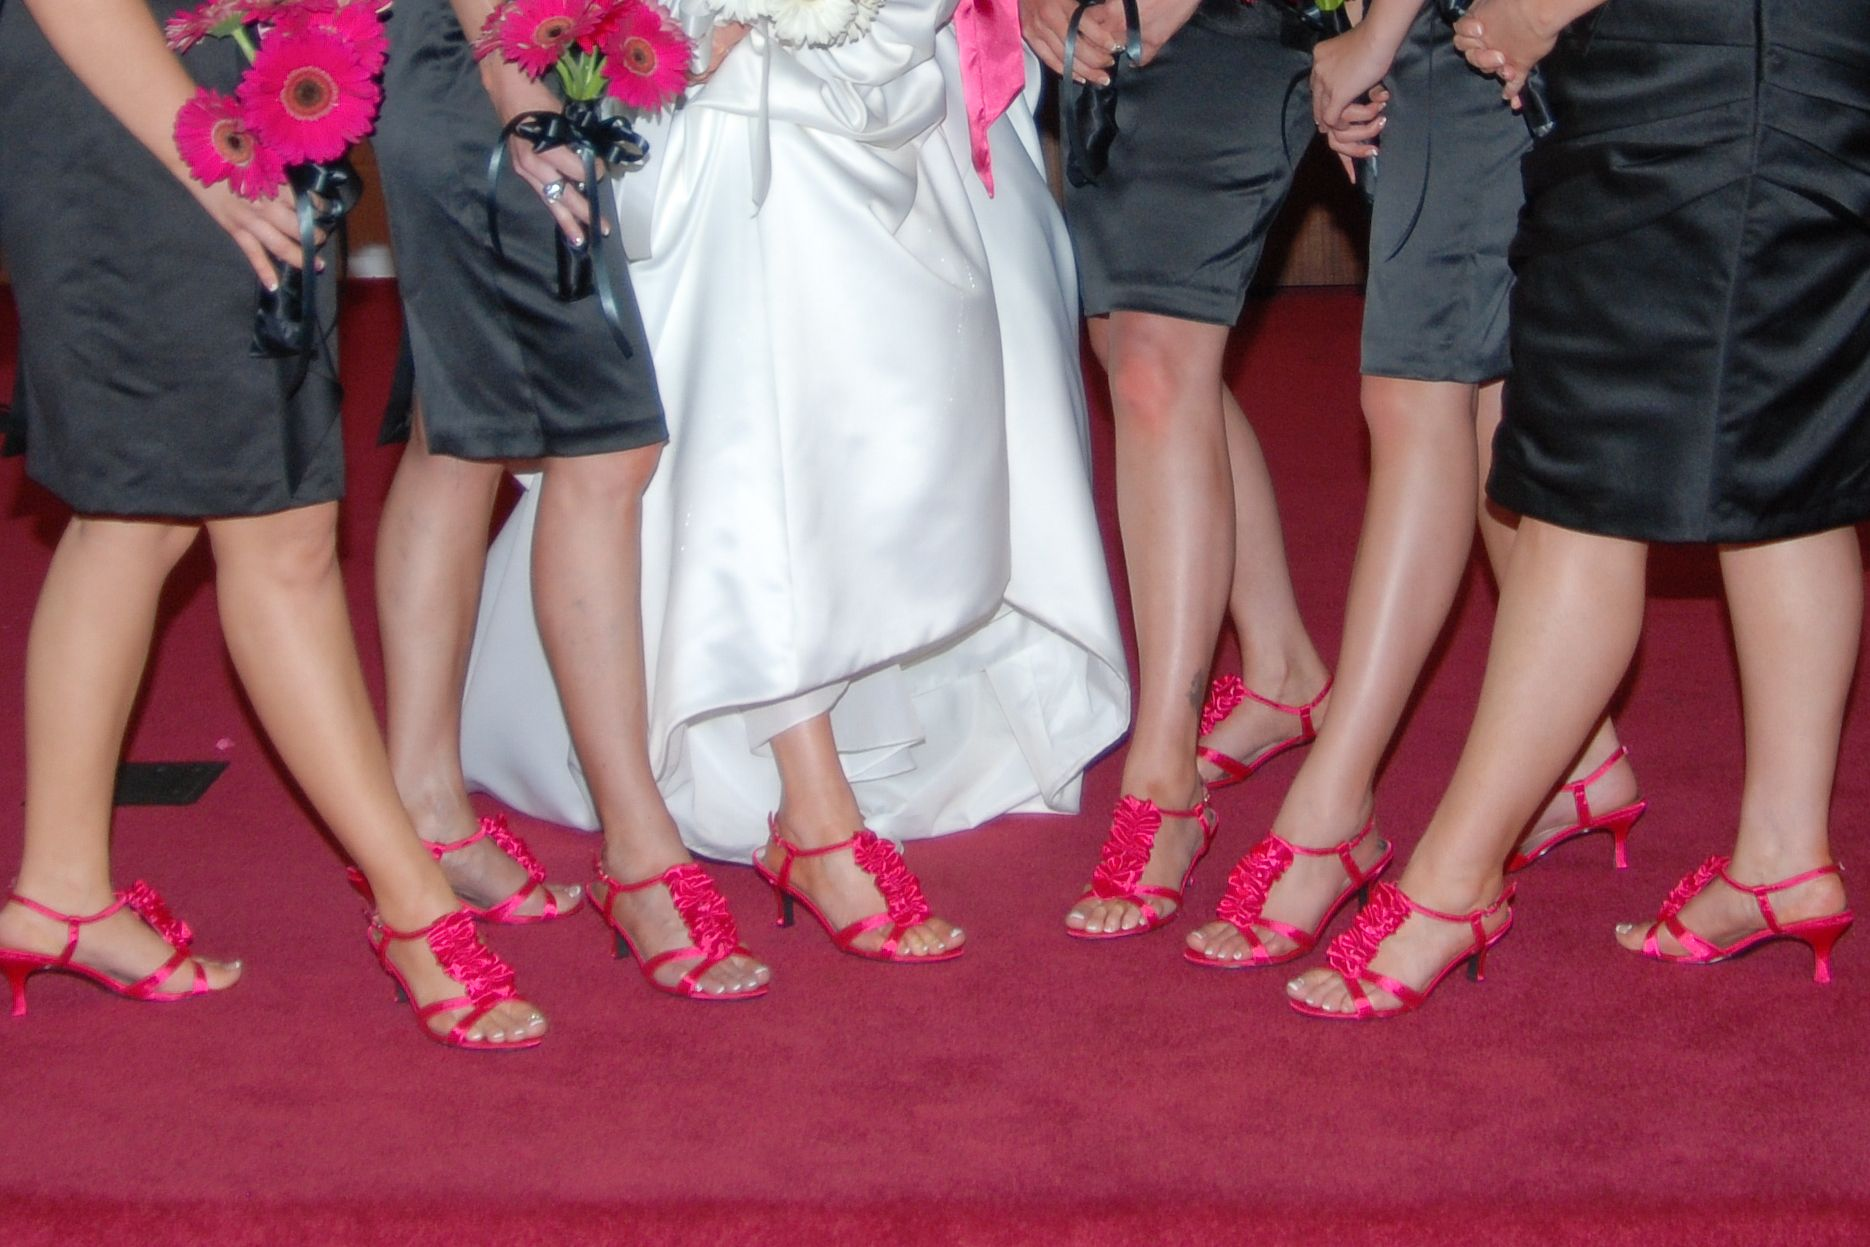 Pin By Kristin Berg On Cristi S Wedding Hot Pink Shoes Hot Pink Dresses Always A Bridesmaid [ 1247 x 1870 Pixel ]